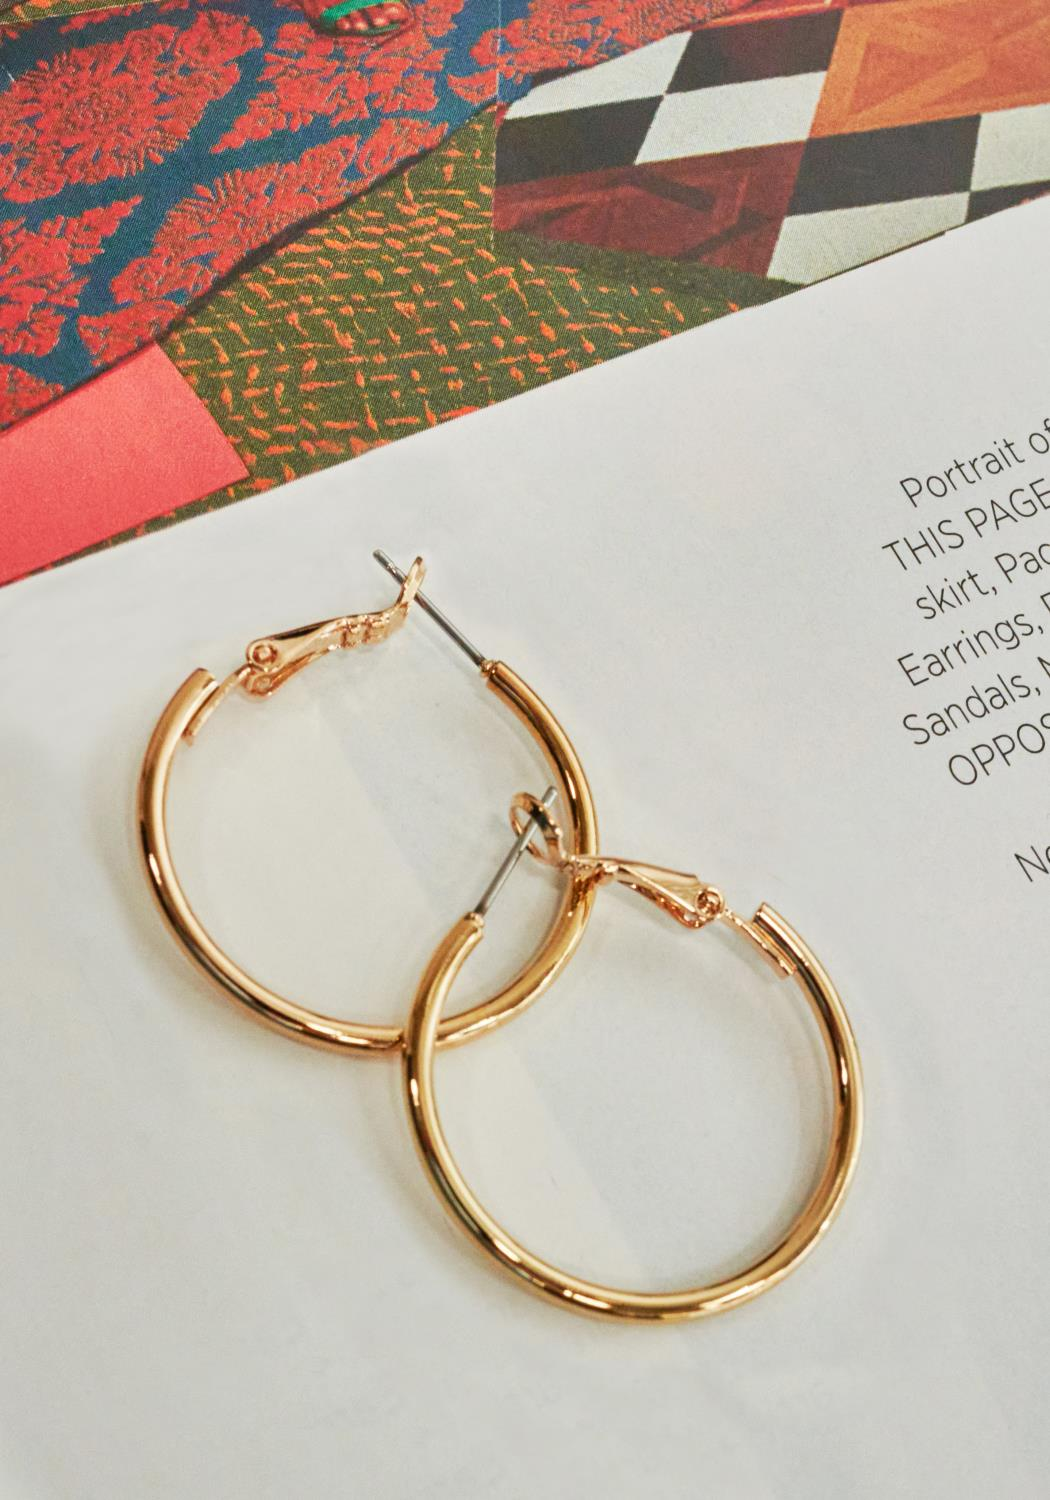 Medium Circle Hoop Earrings